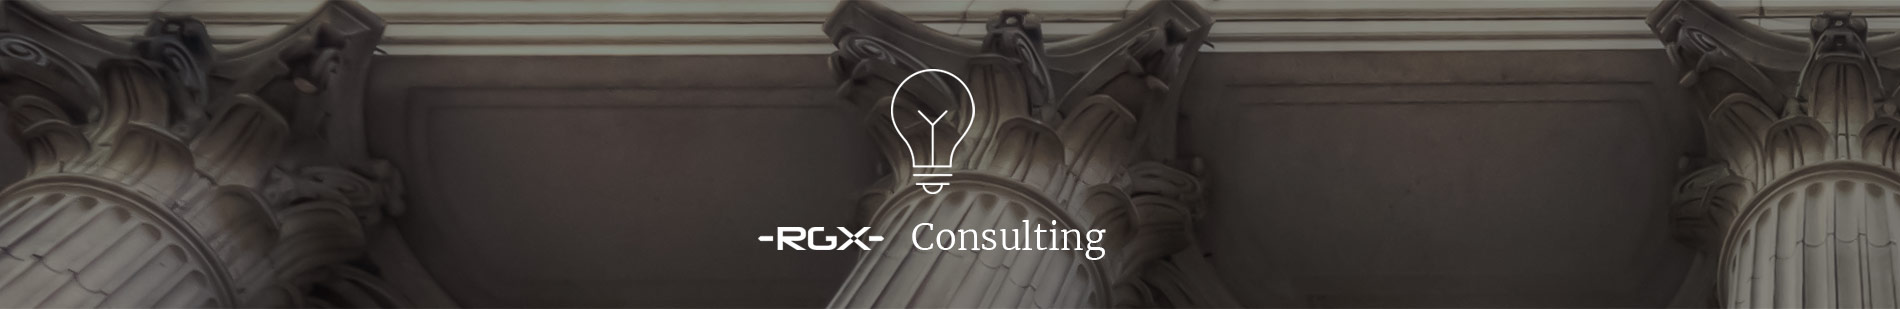 Export consultancy services for trade associations